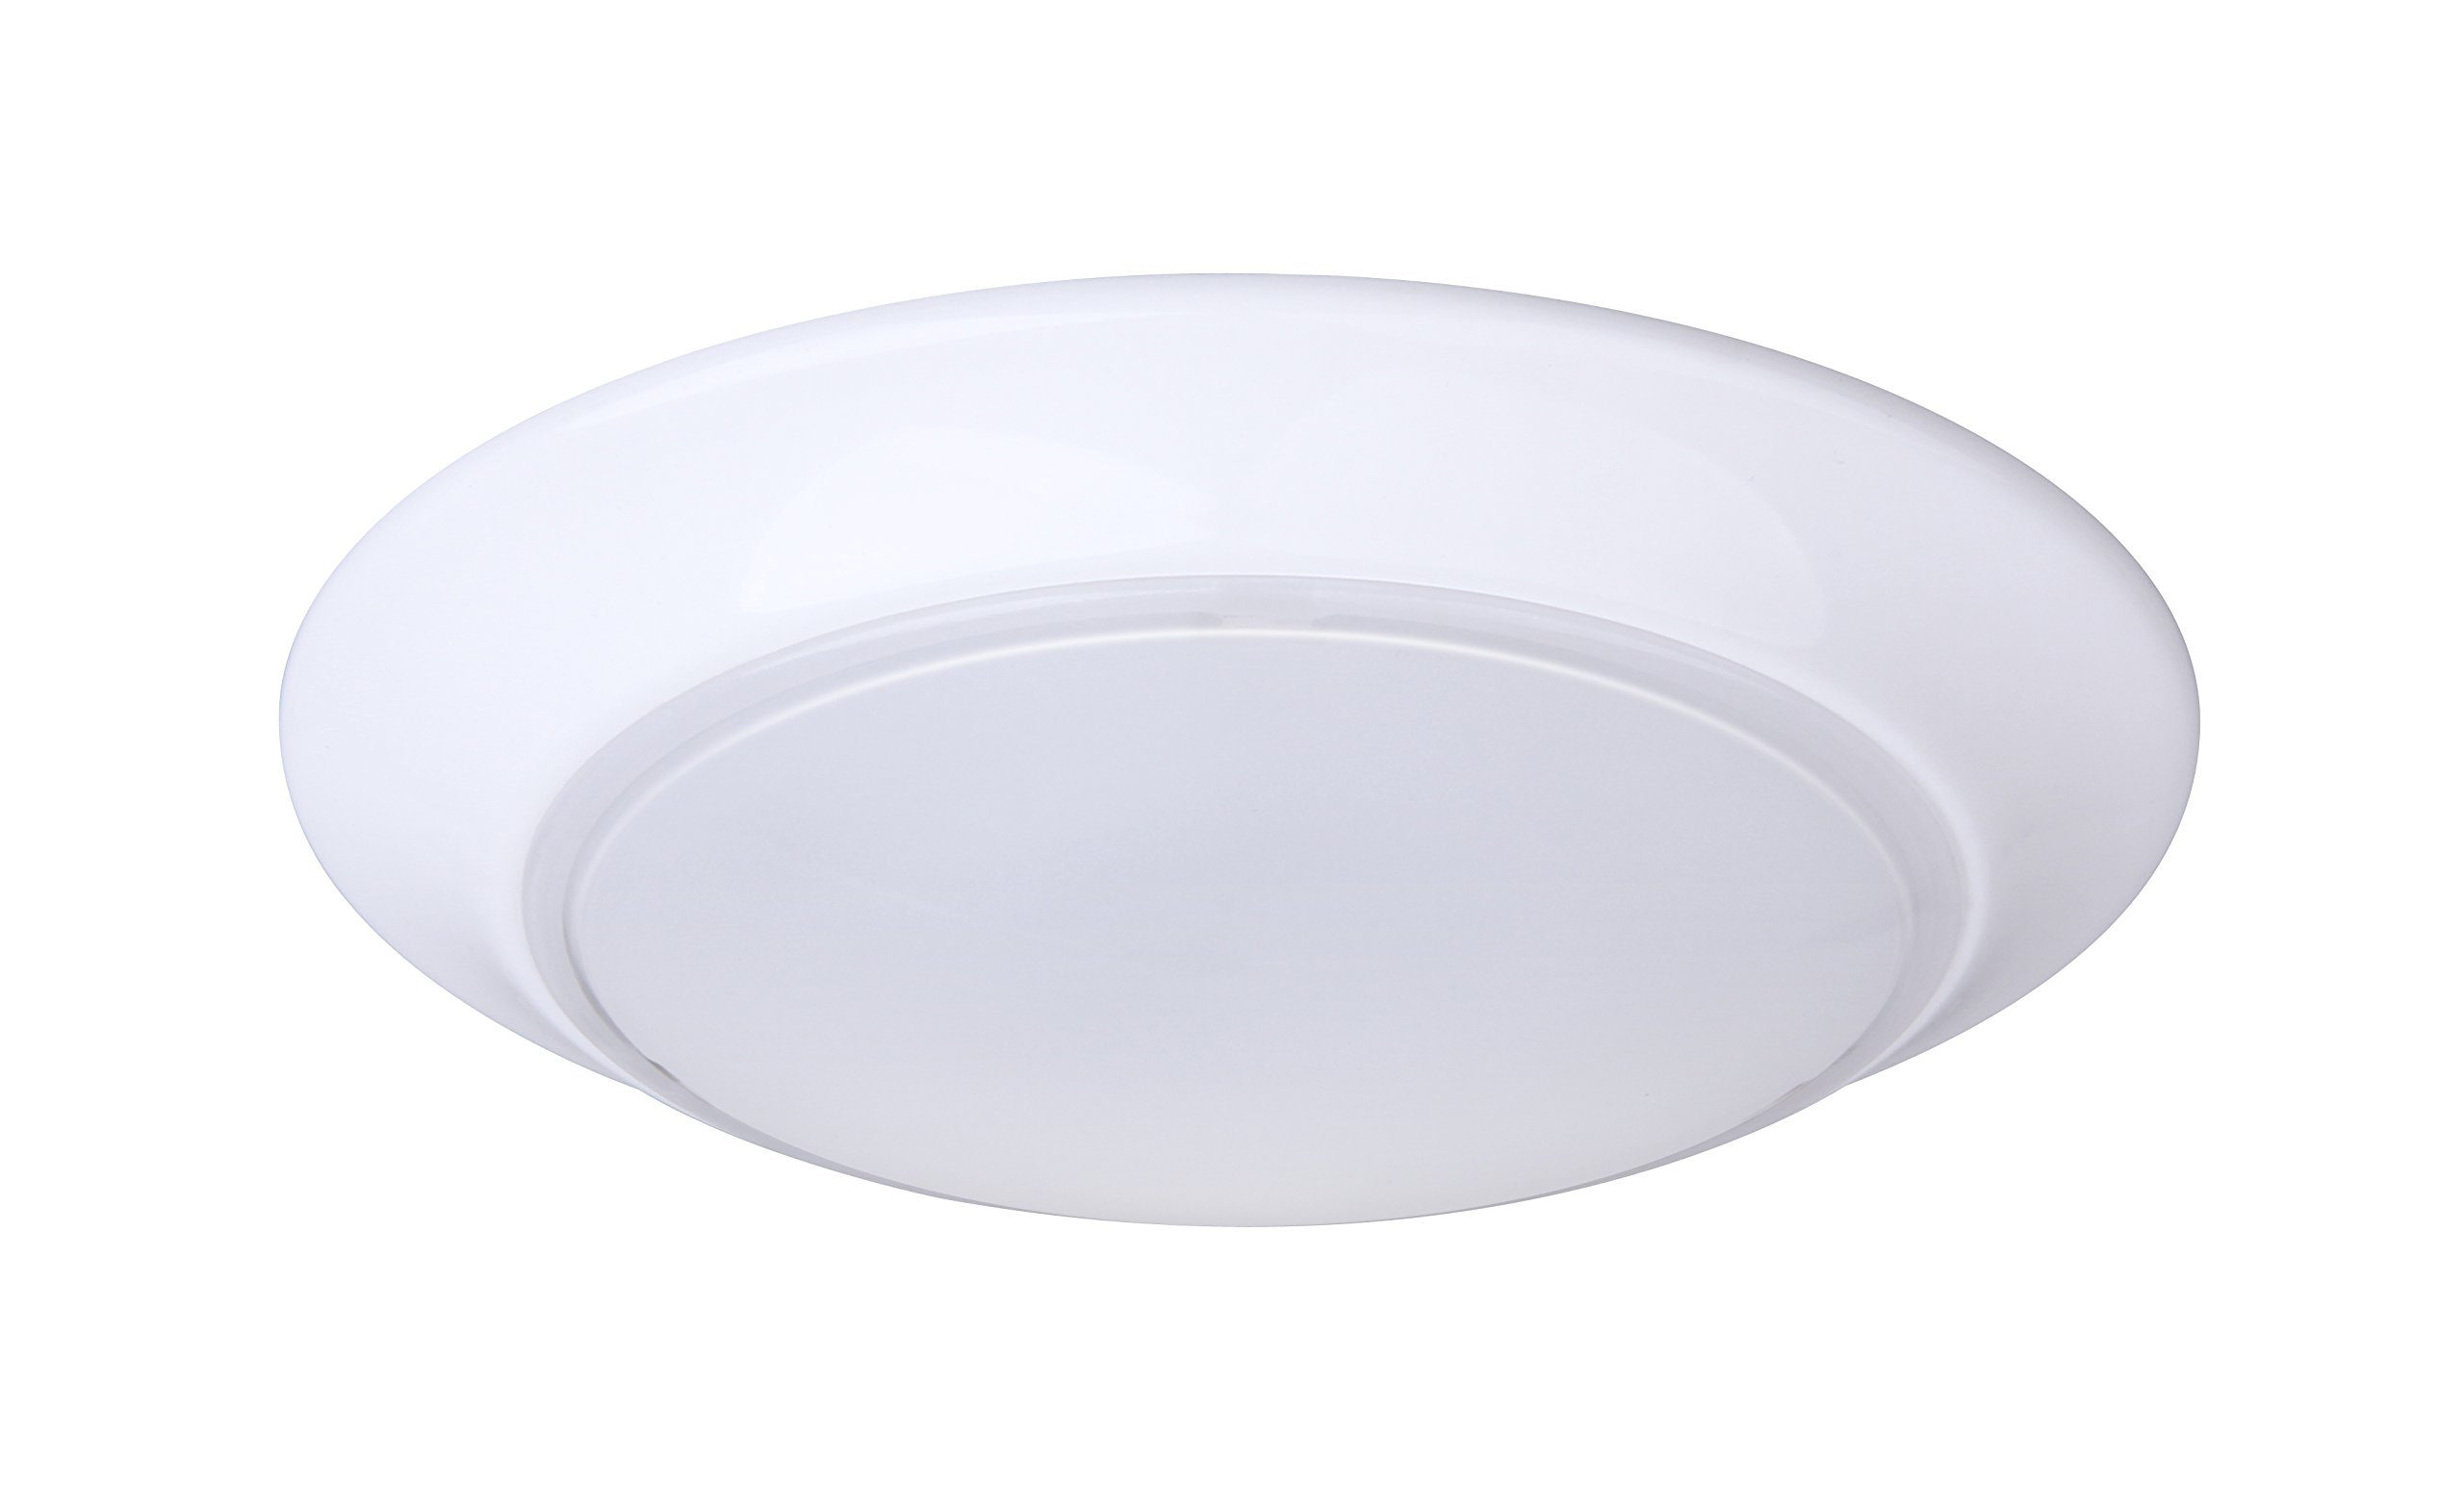 Lit-Path 7.5 inch LED Flush Mount Ceiling Lighting Fixture, 11.5W (75W Equivalent), Dimmable, 800 Lumen, ETL and ES Qualified